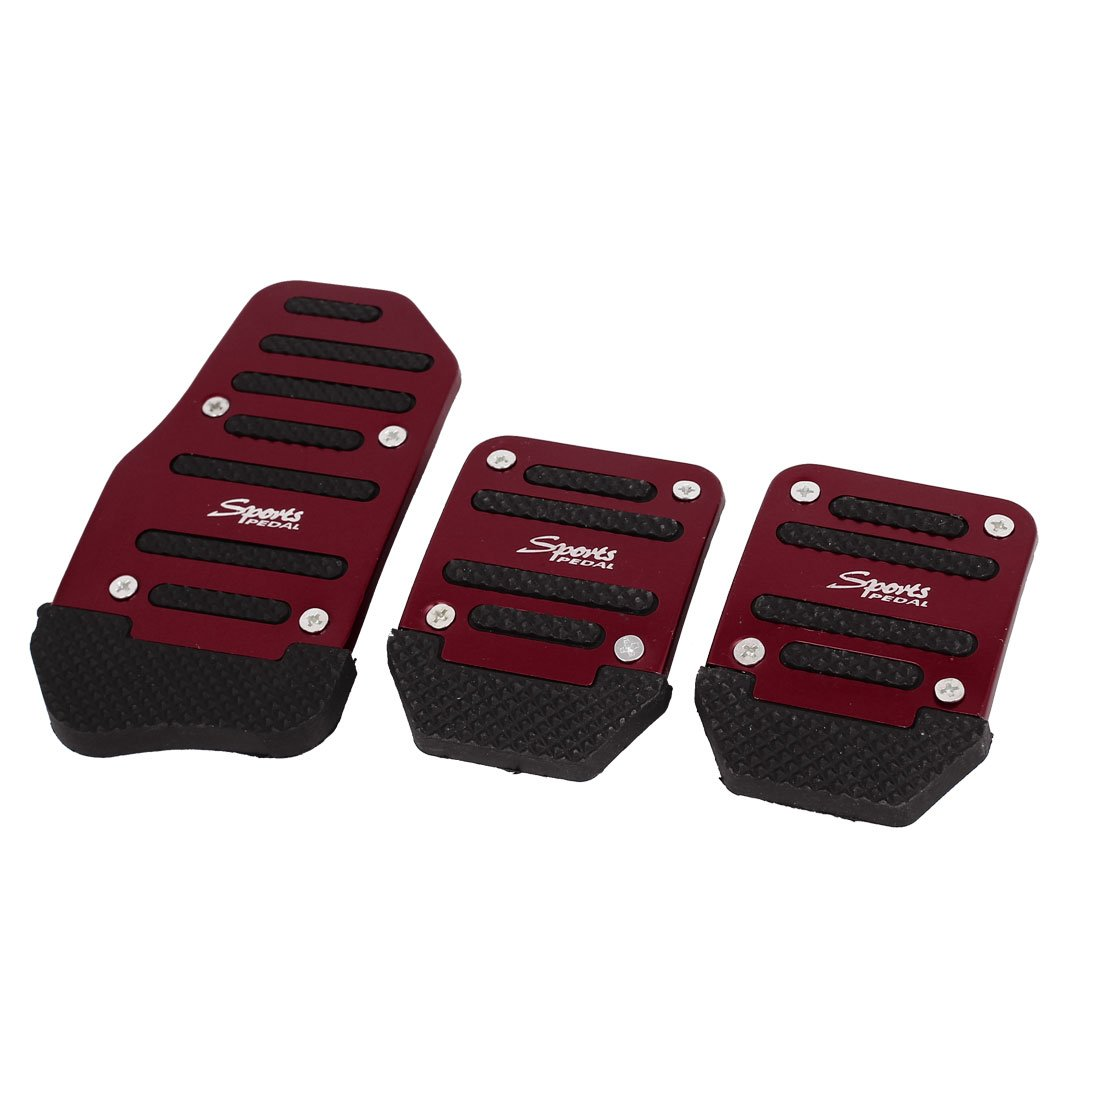 Sourcingmap 3pcs Burgundy Black Nonslip Gas Clutch Brake Pedal Pad Covers for Auto Car